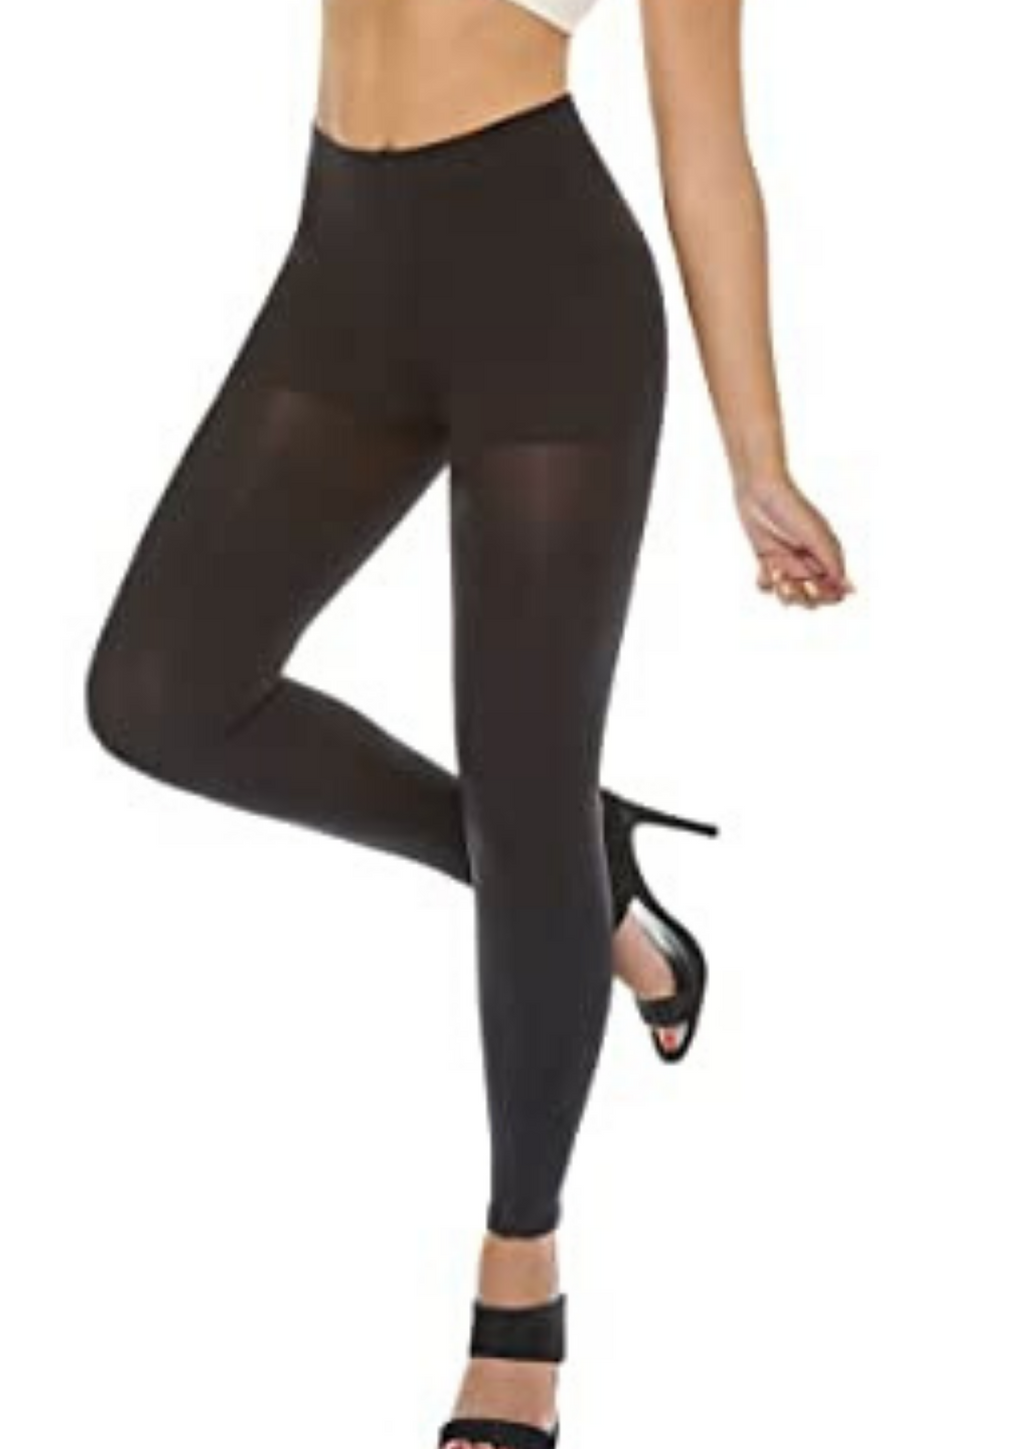 BIO-CRYSTALS SMART LEGGINS Calzas Levanta cola Negra